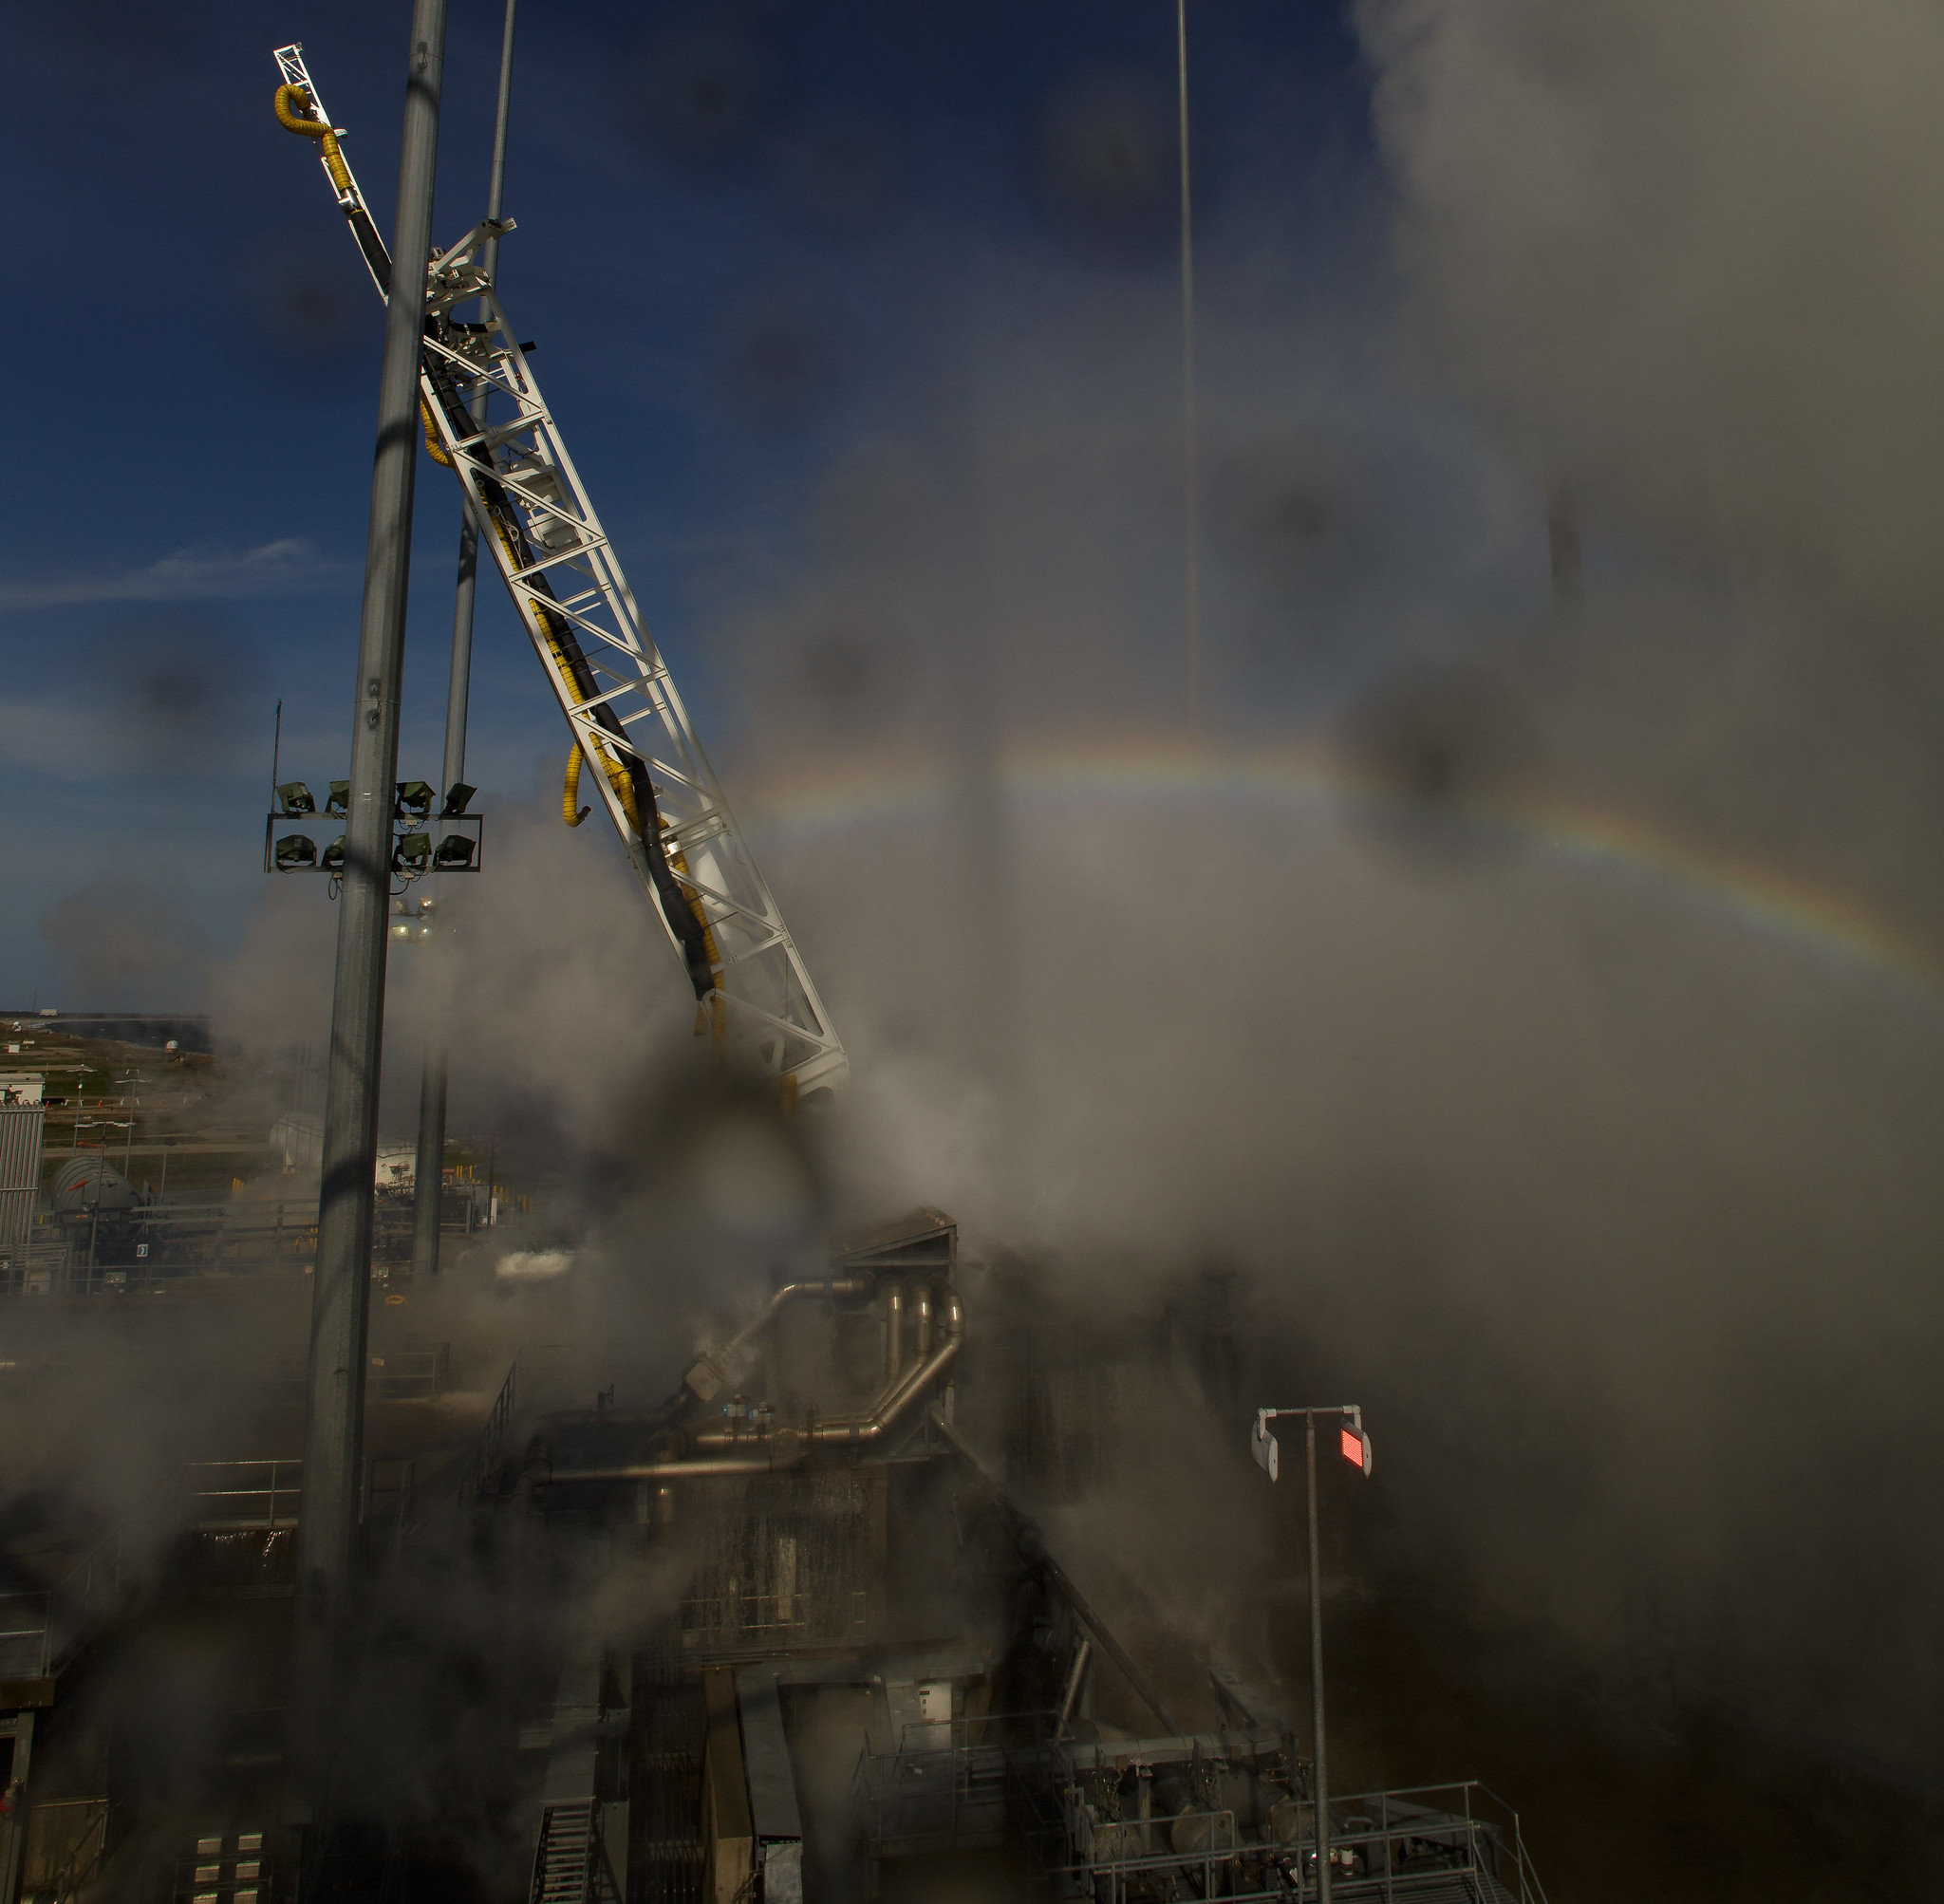 A Rainbow and the Cygnus Launch